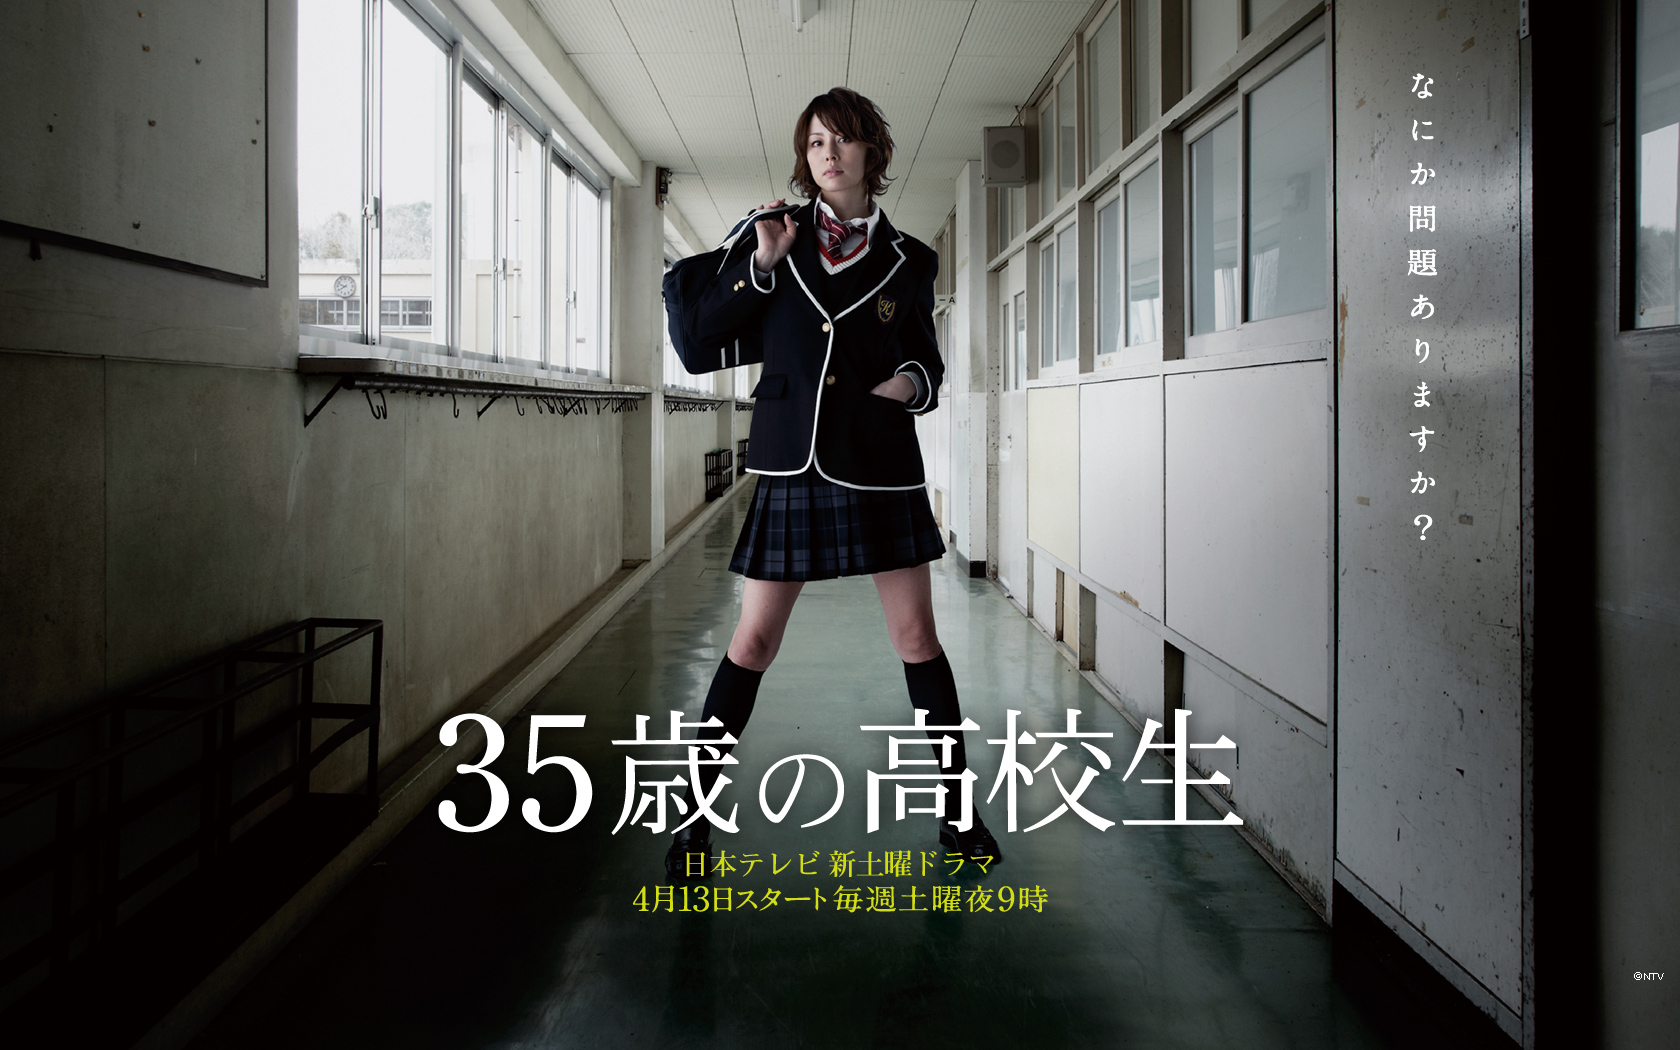 Drama-MAX-No-Dropping-Out-Back-to-School-at-35-Ryoko-Yonekura-review-1